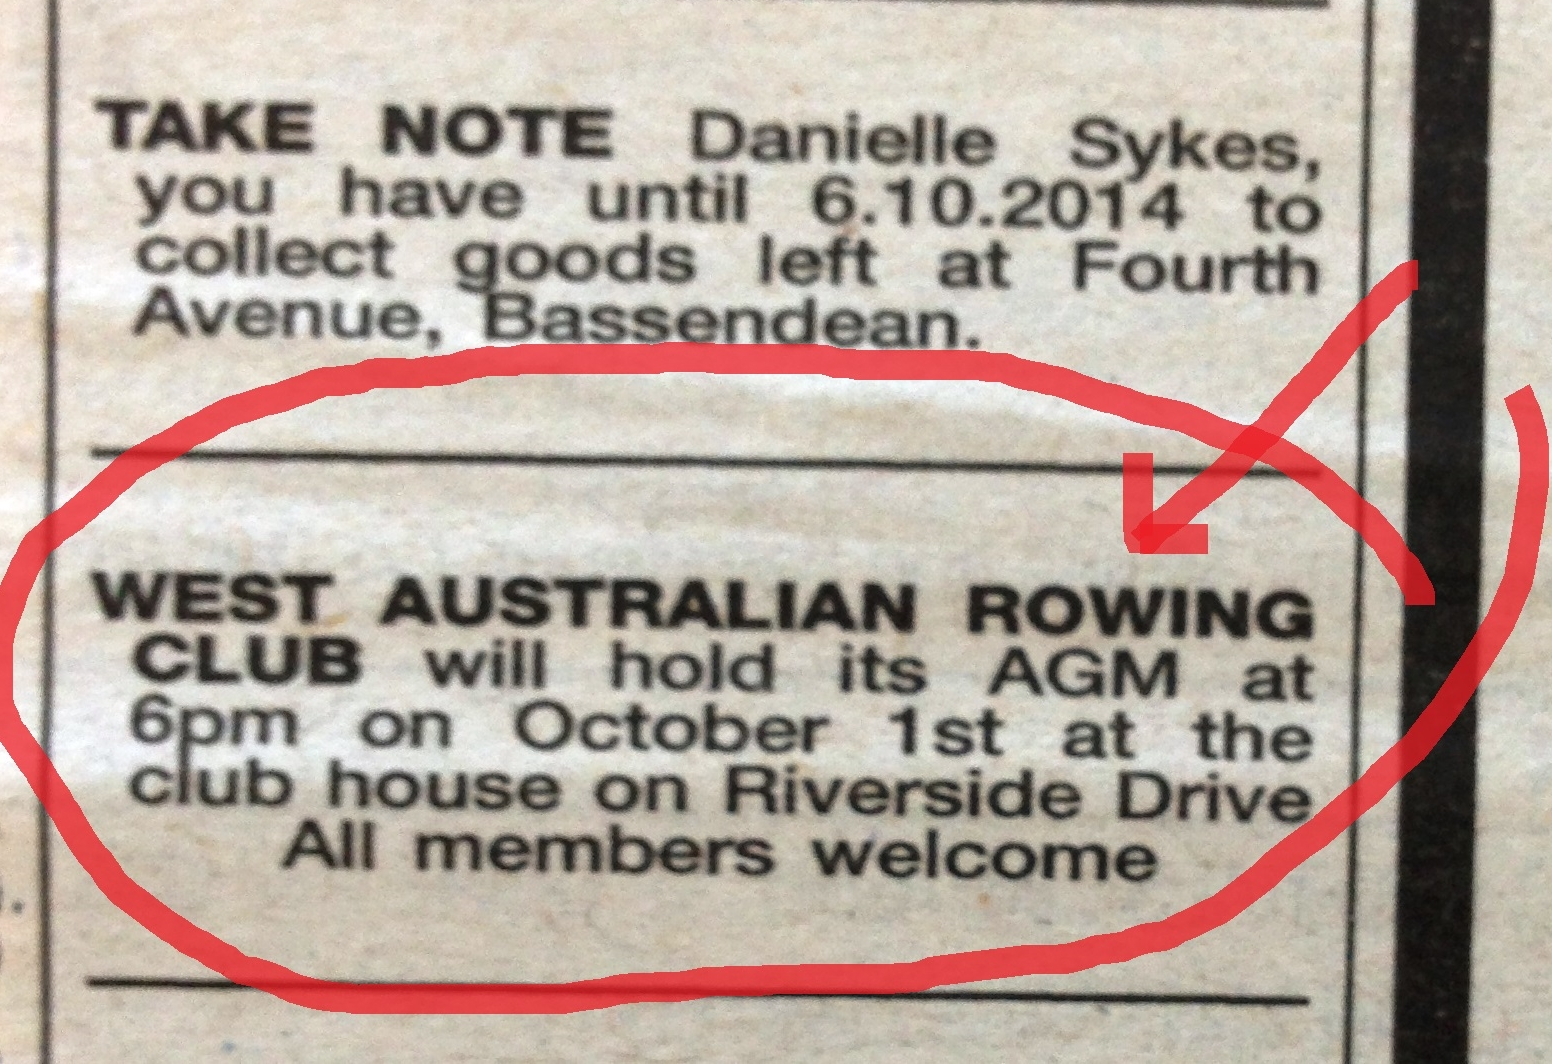 The ad in the West Australian advising of WARC's upcominb AGM